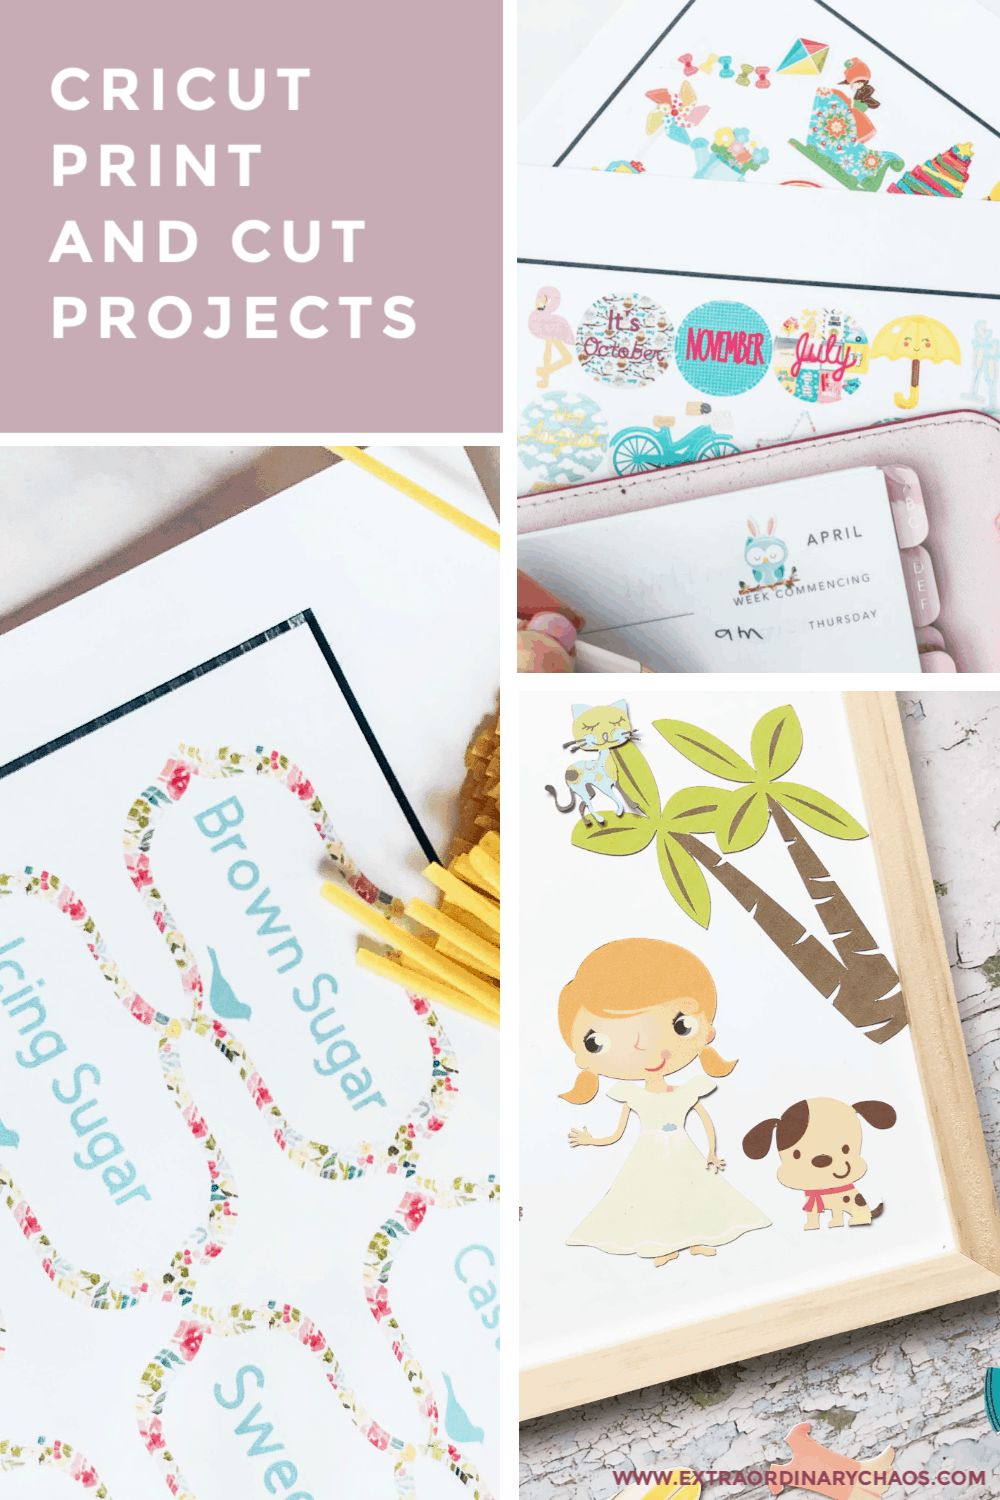 Cricut Print and Cut Projects